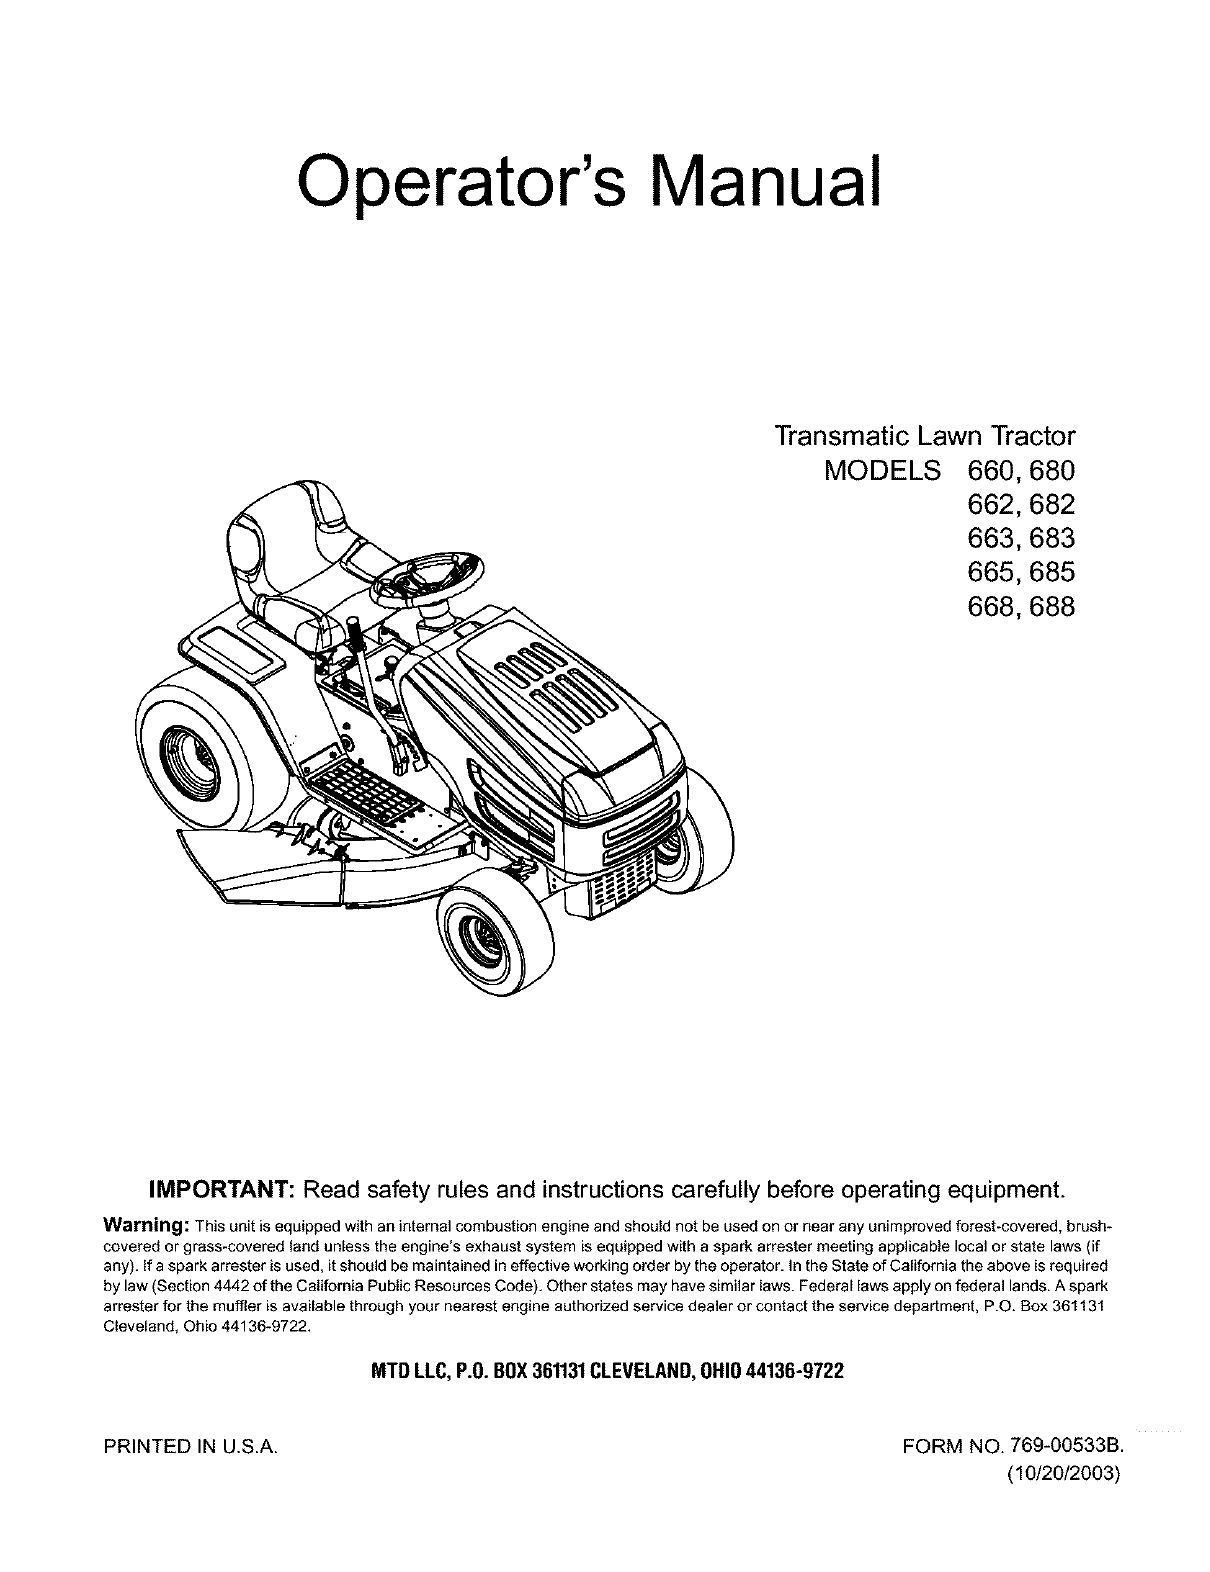 MTD 13A6673G118 User Manual LAWN TRACTOR Manuals And Guides L0404192